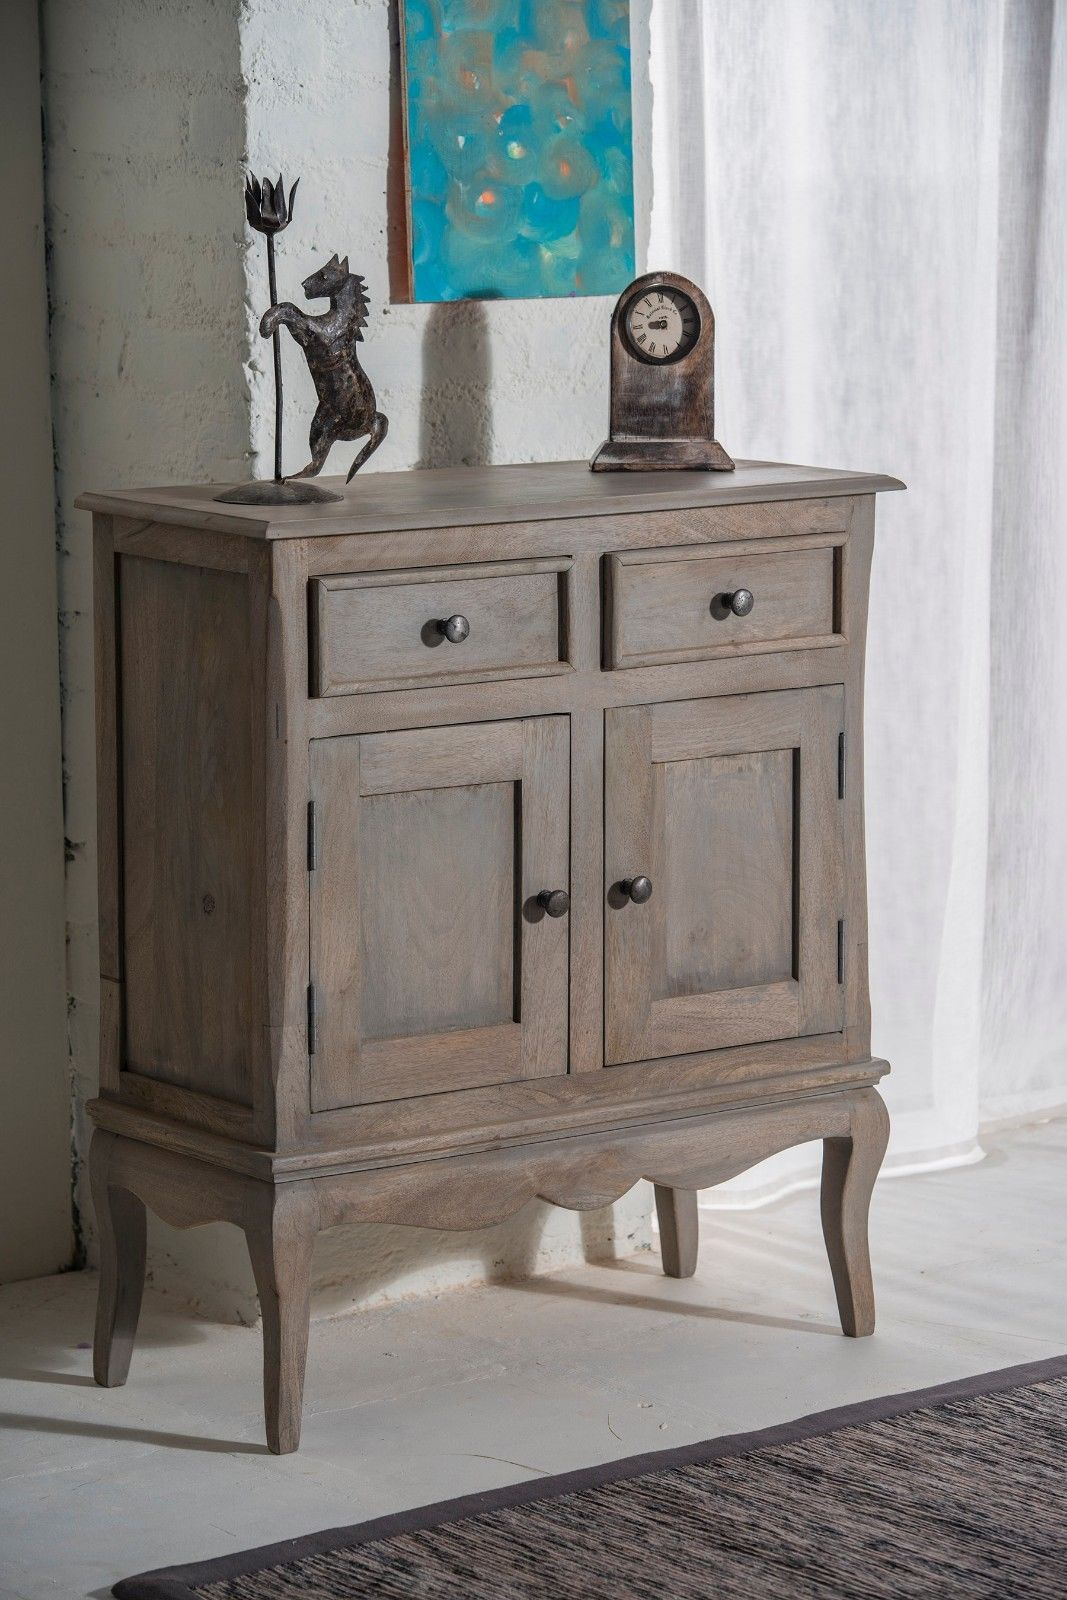 Sideboard Shabby Chic Bourdeilles Slim Sideboard Cupboard Hall Cabinet Solid Shabby Chic In Mango